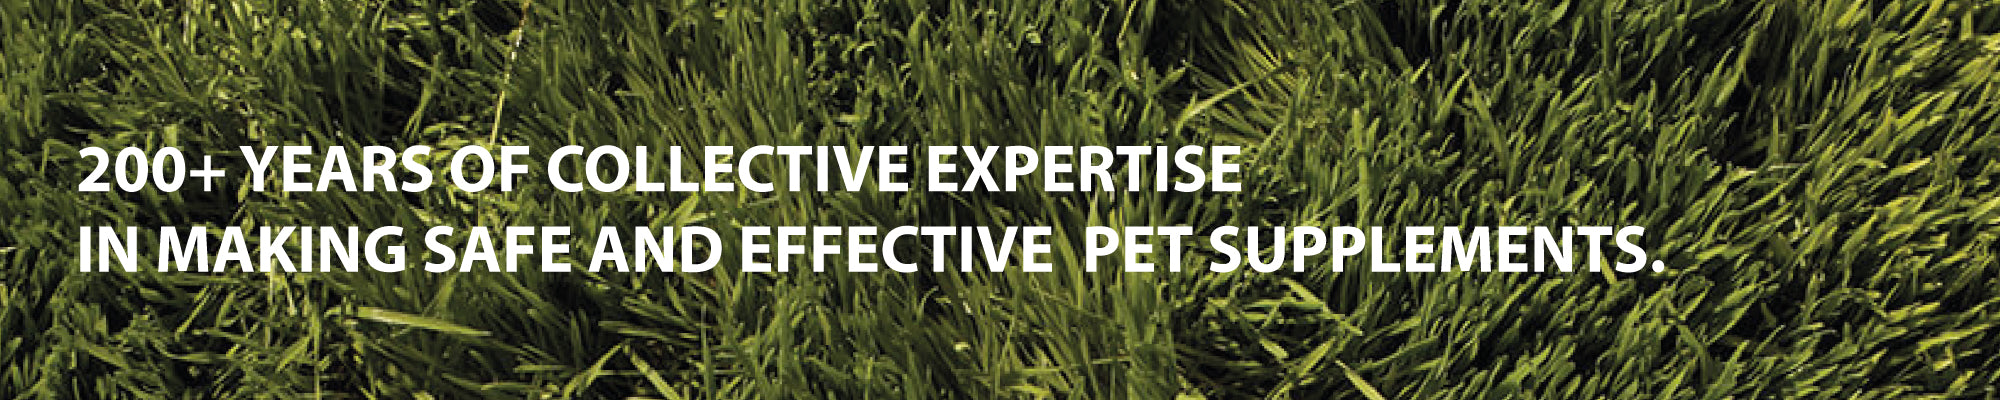 200+ YEARS OF COLLECTIVE EXPERTISE IN MAKING SAFE, EFFECTIVE AND LEGAL PET SUPPLEMENTS.